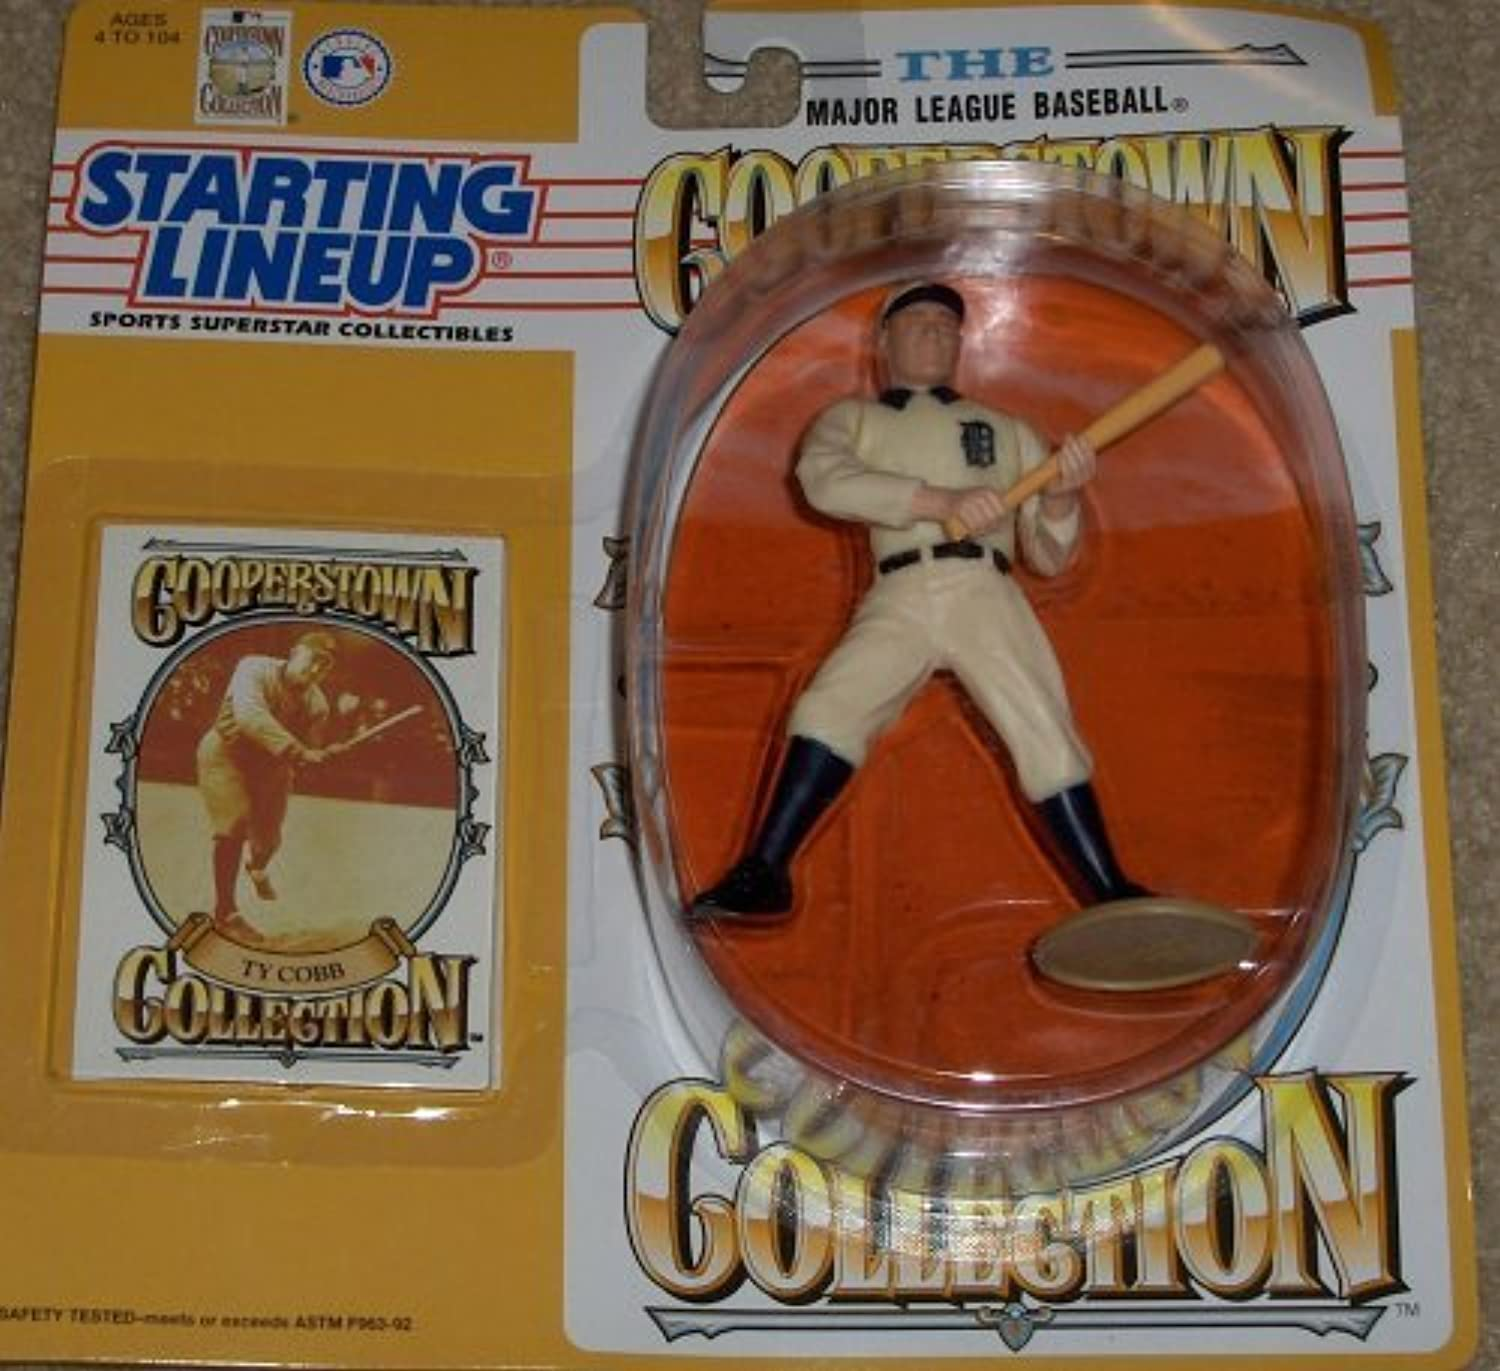 1993 Ty Cobb Cooperstown Collection Kenner Starting lineup Figure by Kenner